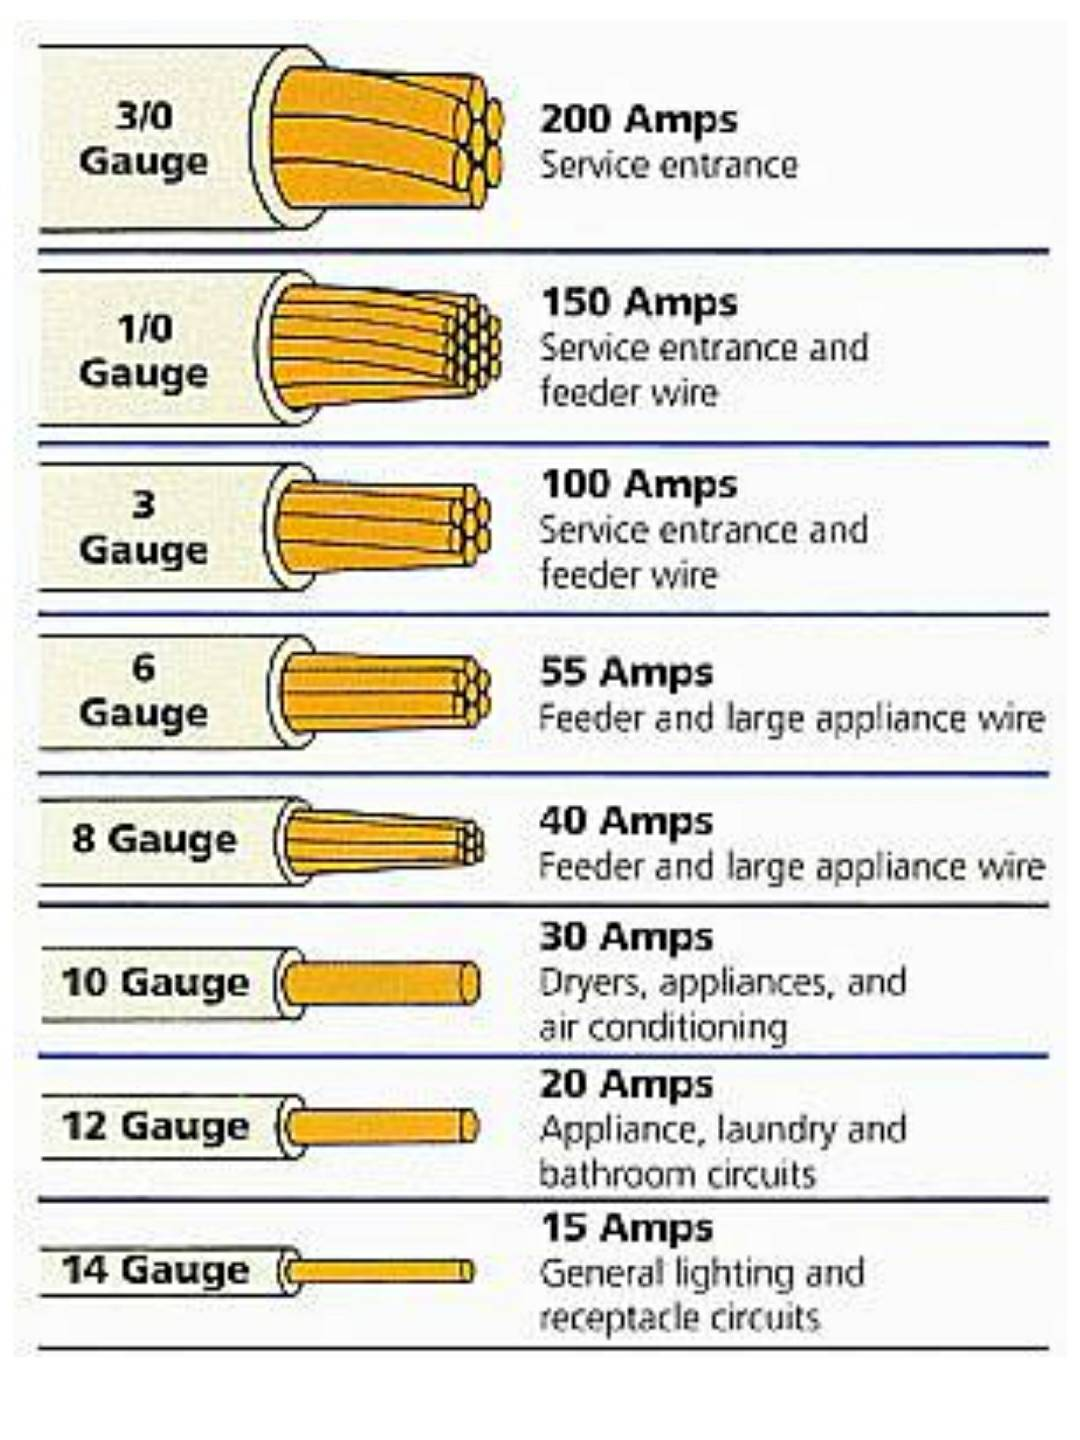 40 amp wire size chart - Moren.impulsar.co